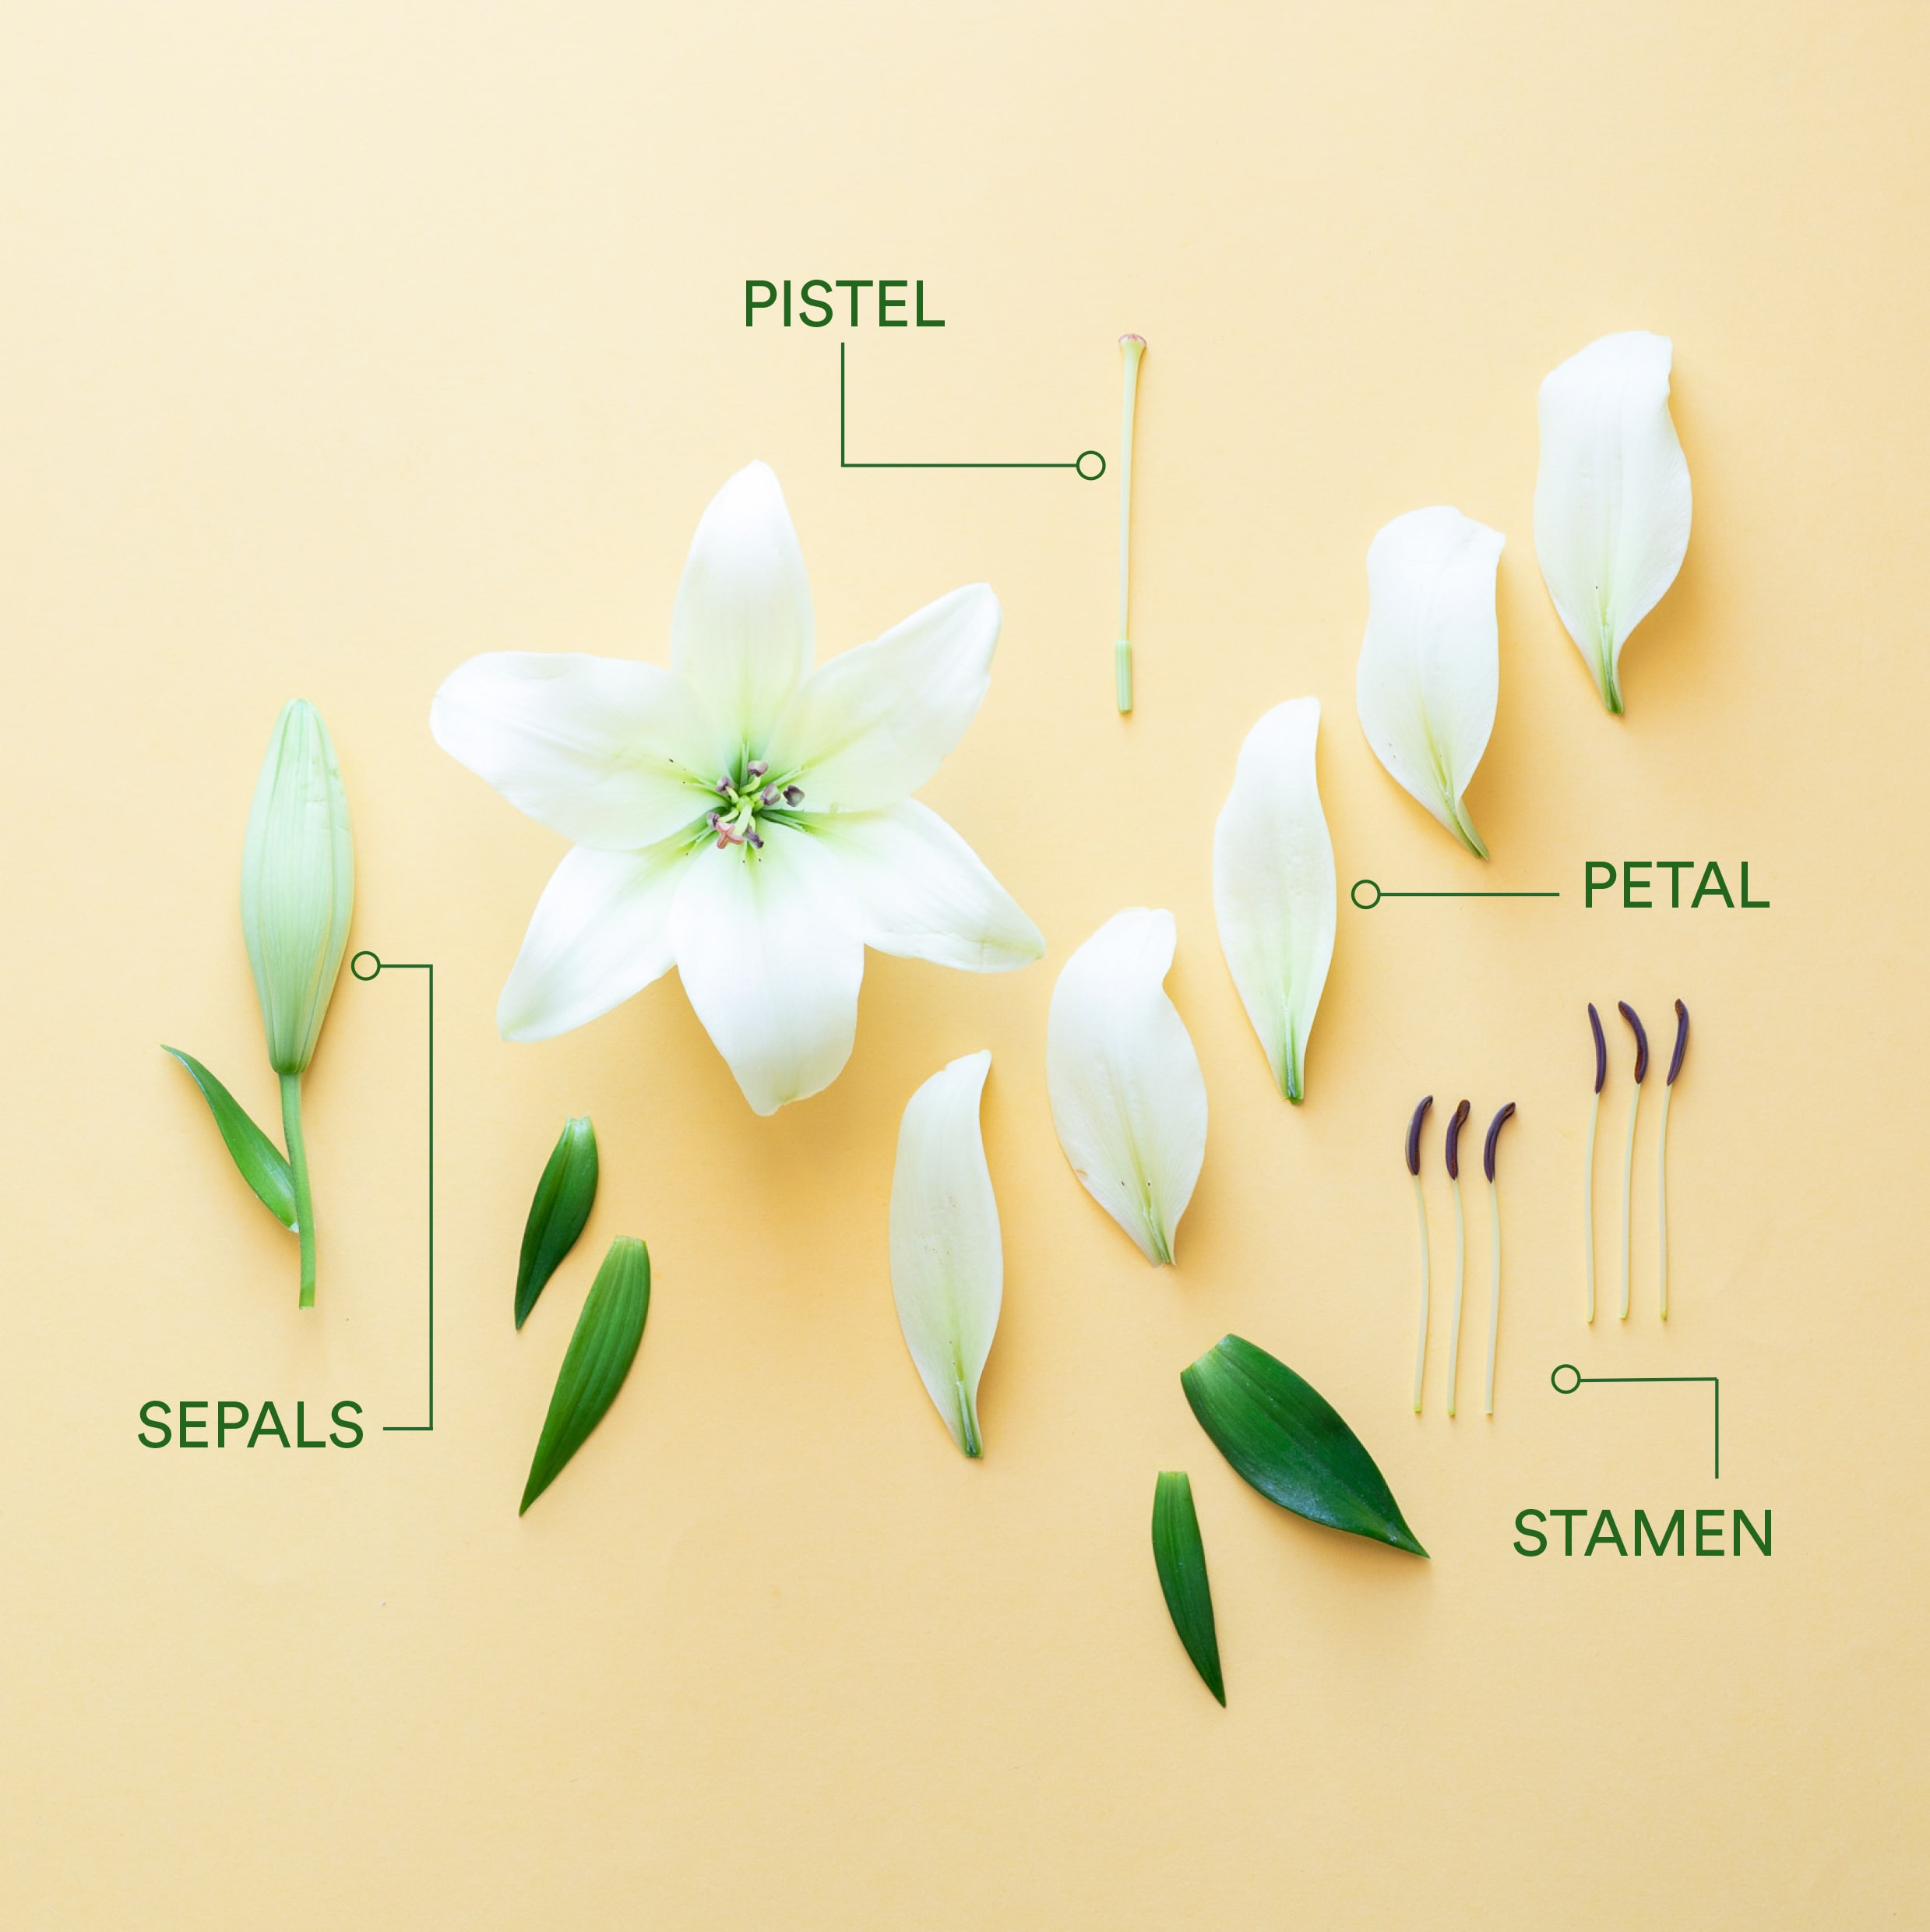 Parts Of A Flower Diagram How To Identify The Main Parts Of A Flower Flower Anatomy